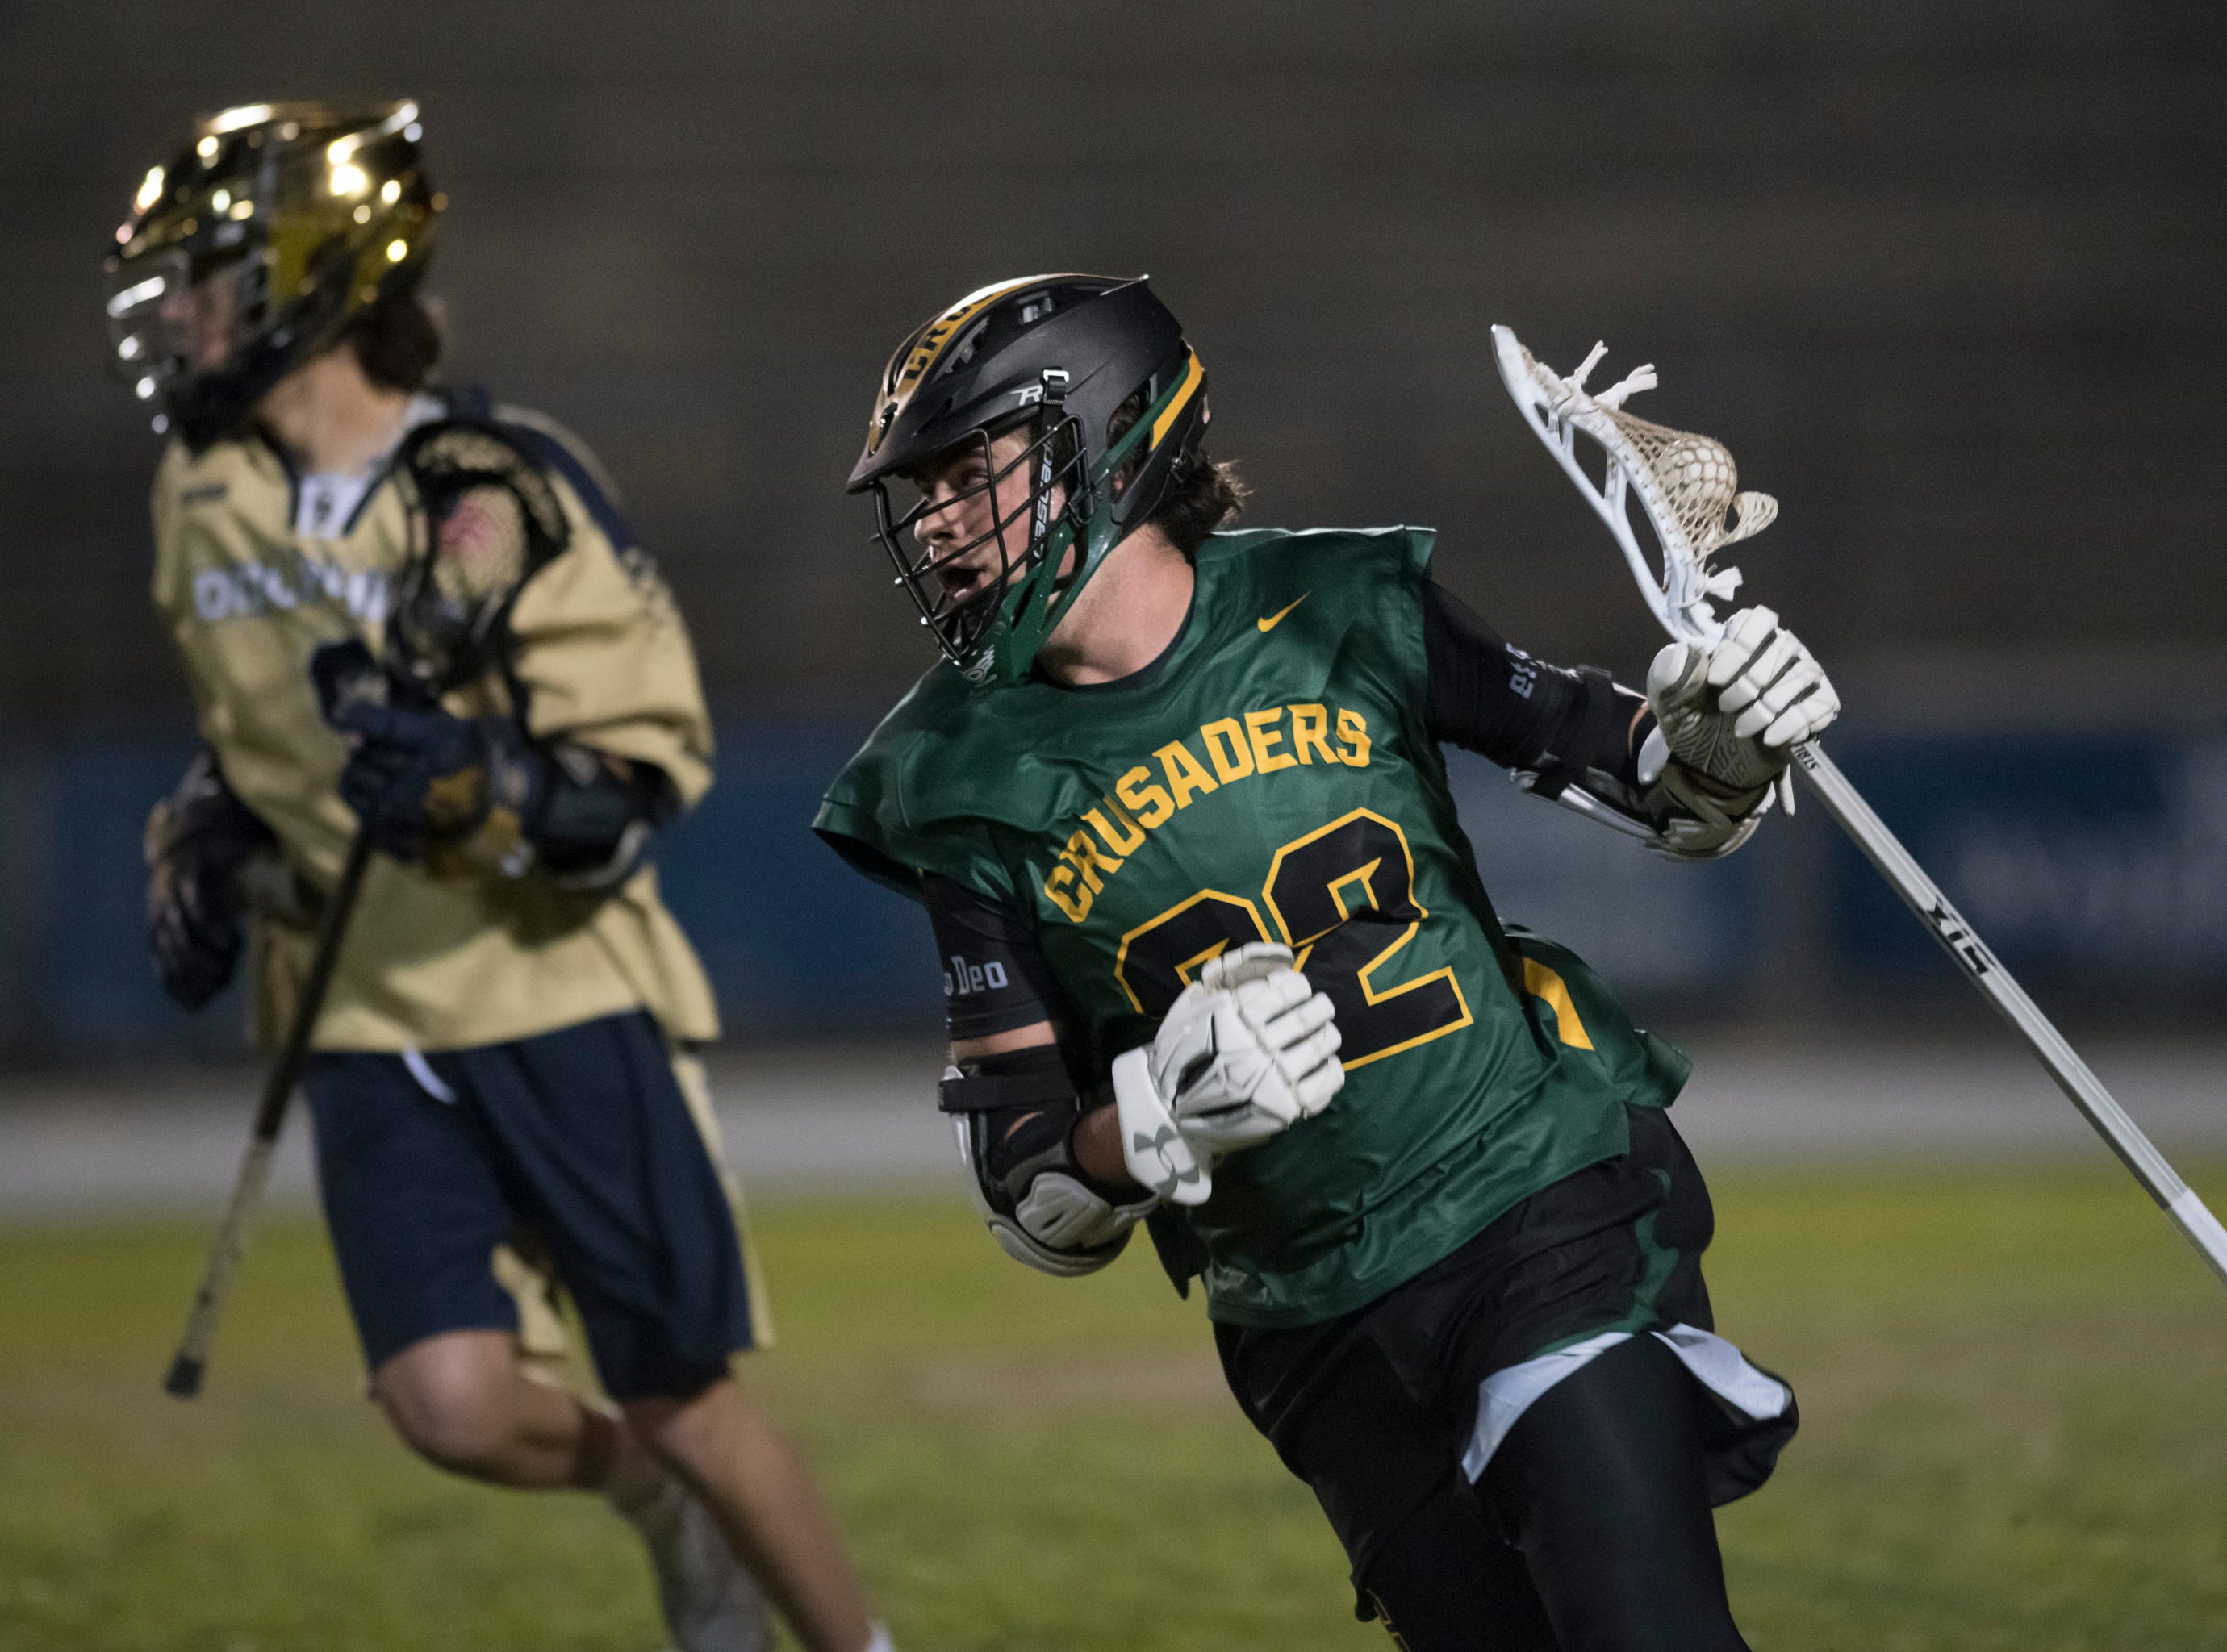 Ryan Campion (22) controls the ball during the Catholic vs. Gulf Breeze boys lacrosse game at Gulf Breeze High School on Wednesday, March 6, 2019.  The Dolphins won 11-9.